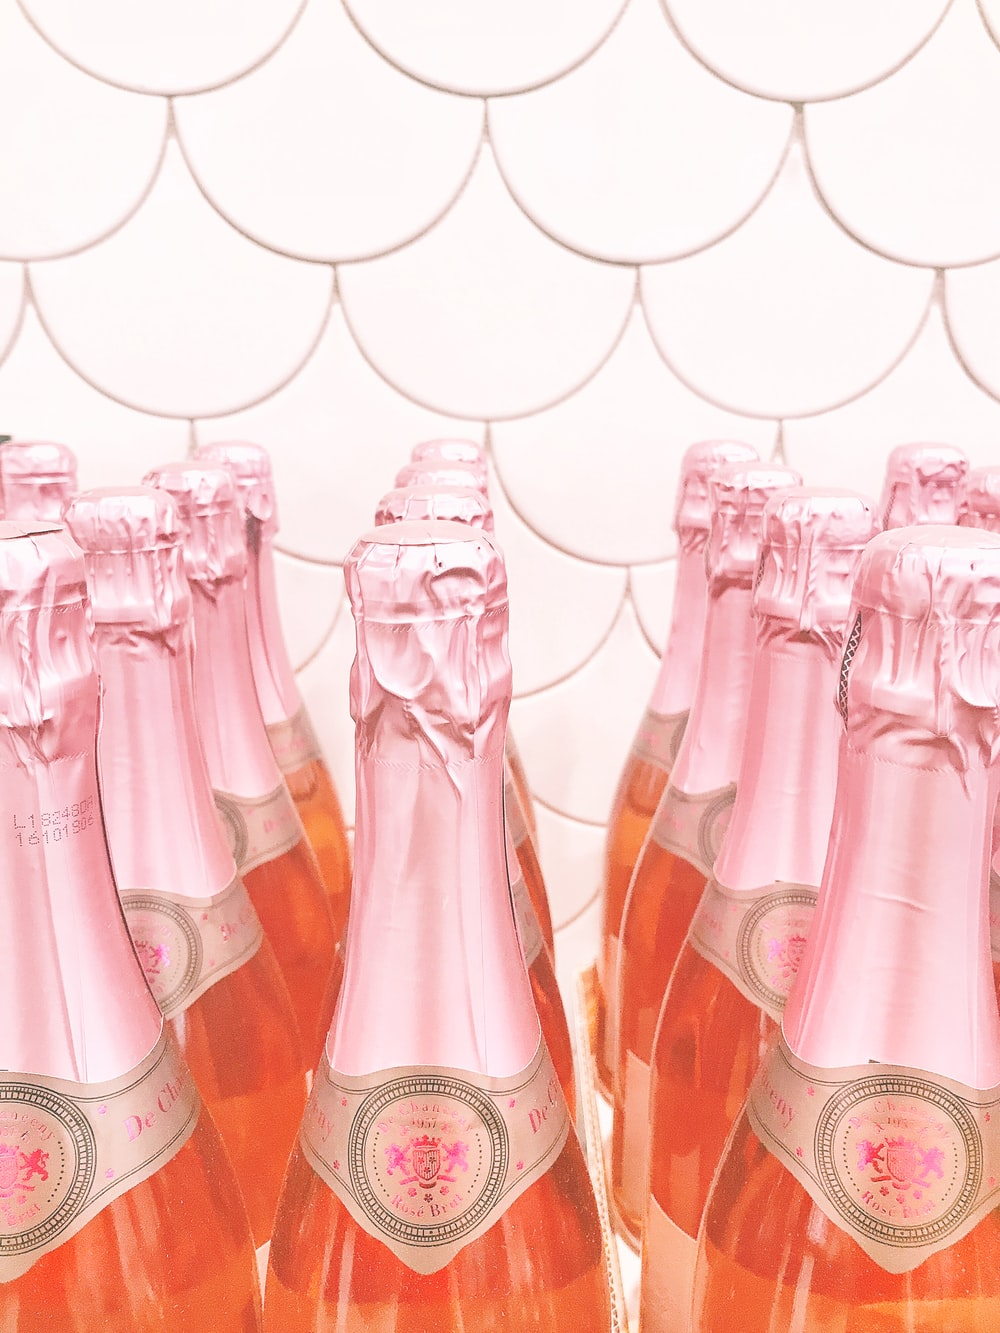 pink glass bottles on brown wooden table